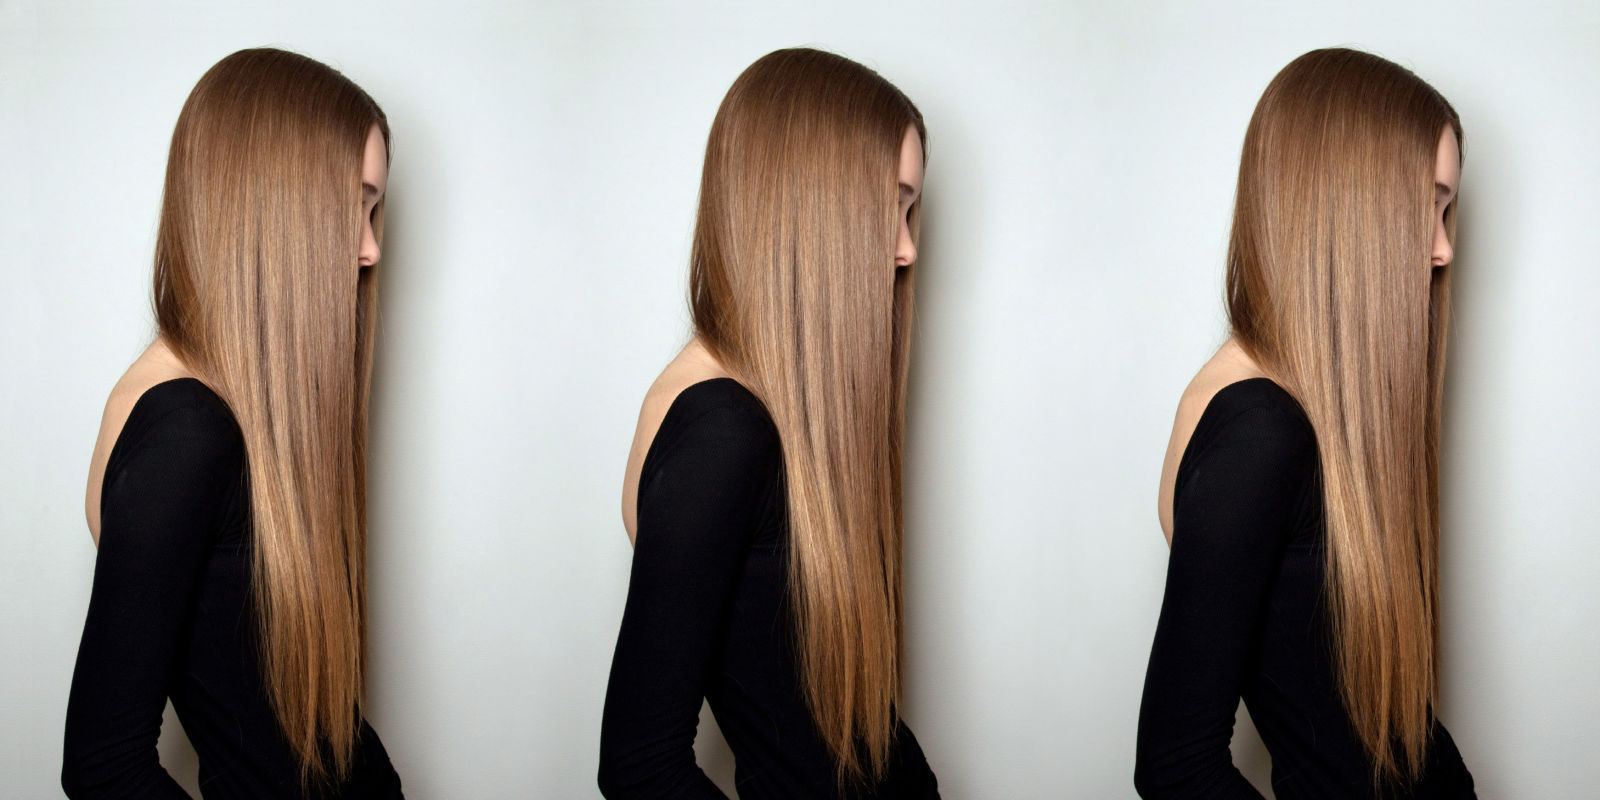 How To Straighten Hair Without Heat Professional